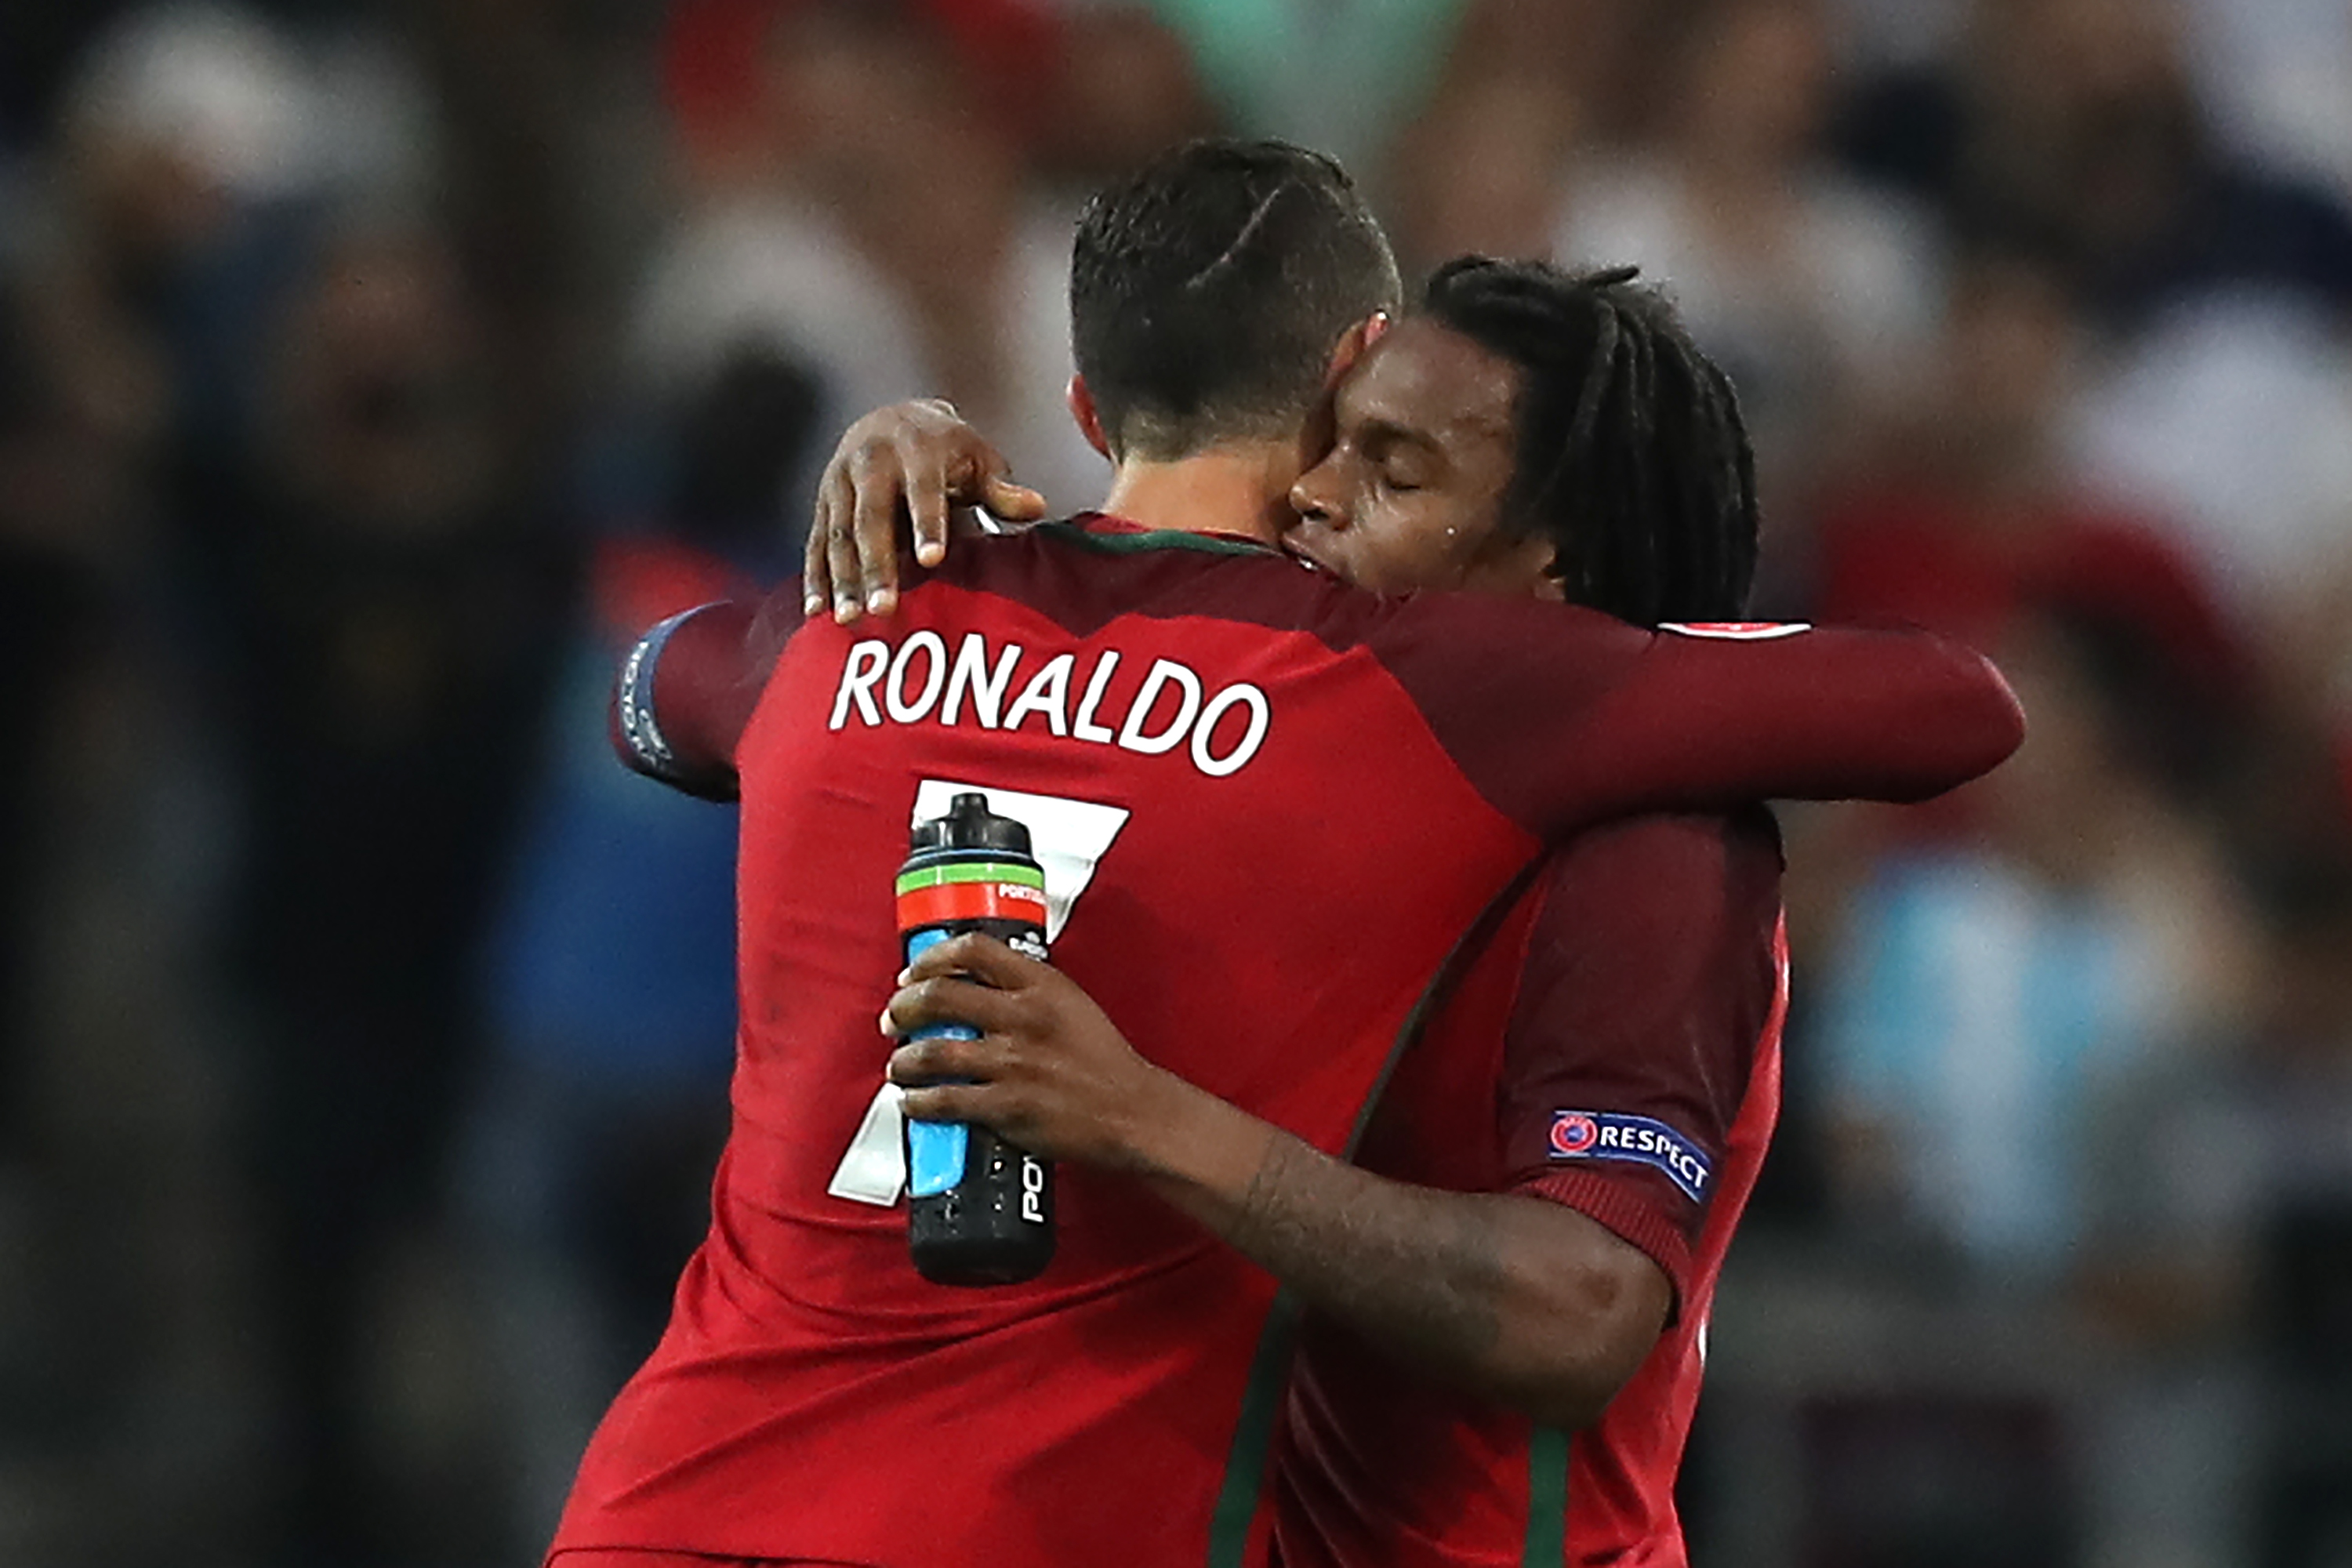 Portugal's midfielder Renato Sanches (R) celebrates with Portugal's forward Cristiano Ronaldo after scoring during the Euro 2016 quarter-final football match between Poland and Portugal at the Stade Velodrome in Marseille on June 30, 2016. / AFP PHOTO / Valery HACHE